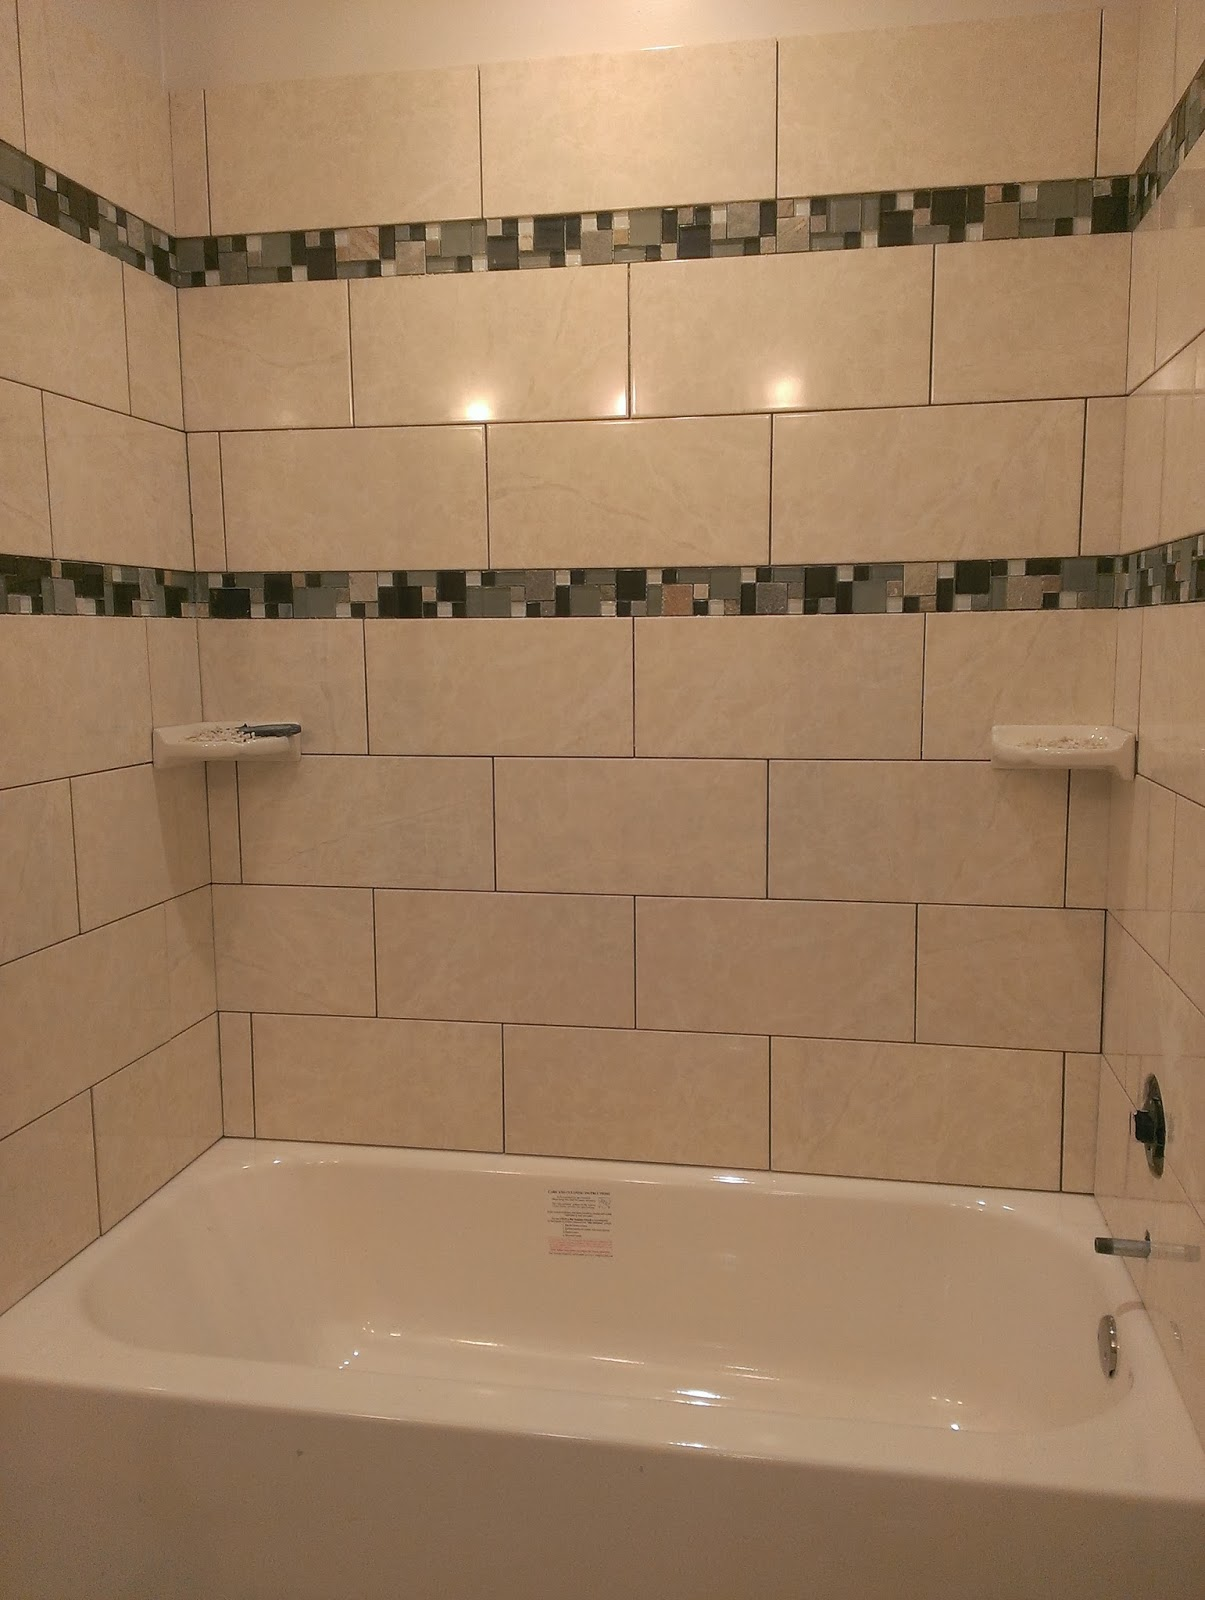 Epoxy Grout For Bathrooms: If I Had Anything To Say...: Bathroom Renovation: What A